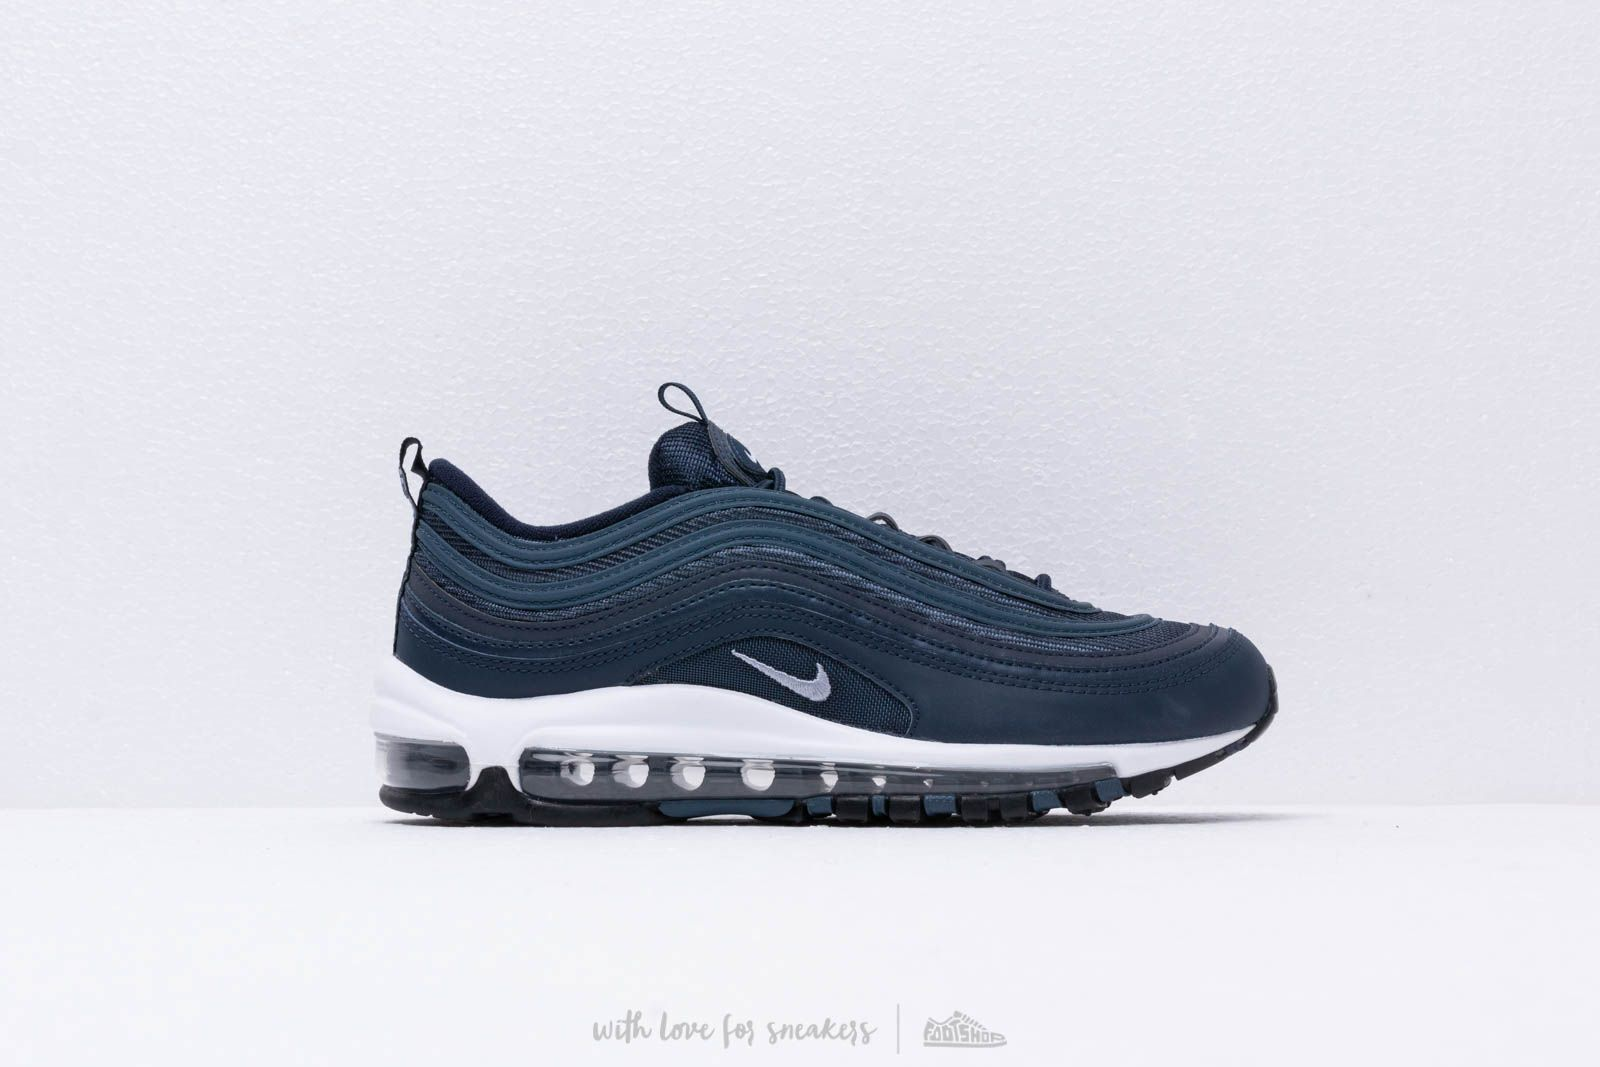 newest b2507 25a52 Nike Air Max 97 Essential Obsidian  Obsidian Mist-Monsoon Blue at a great  price